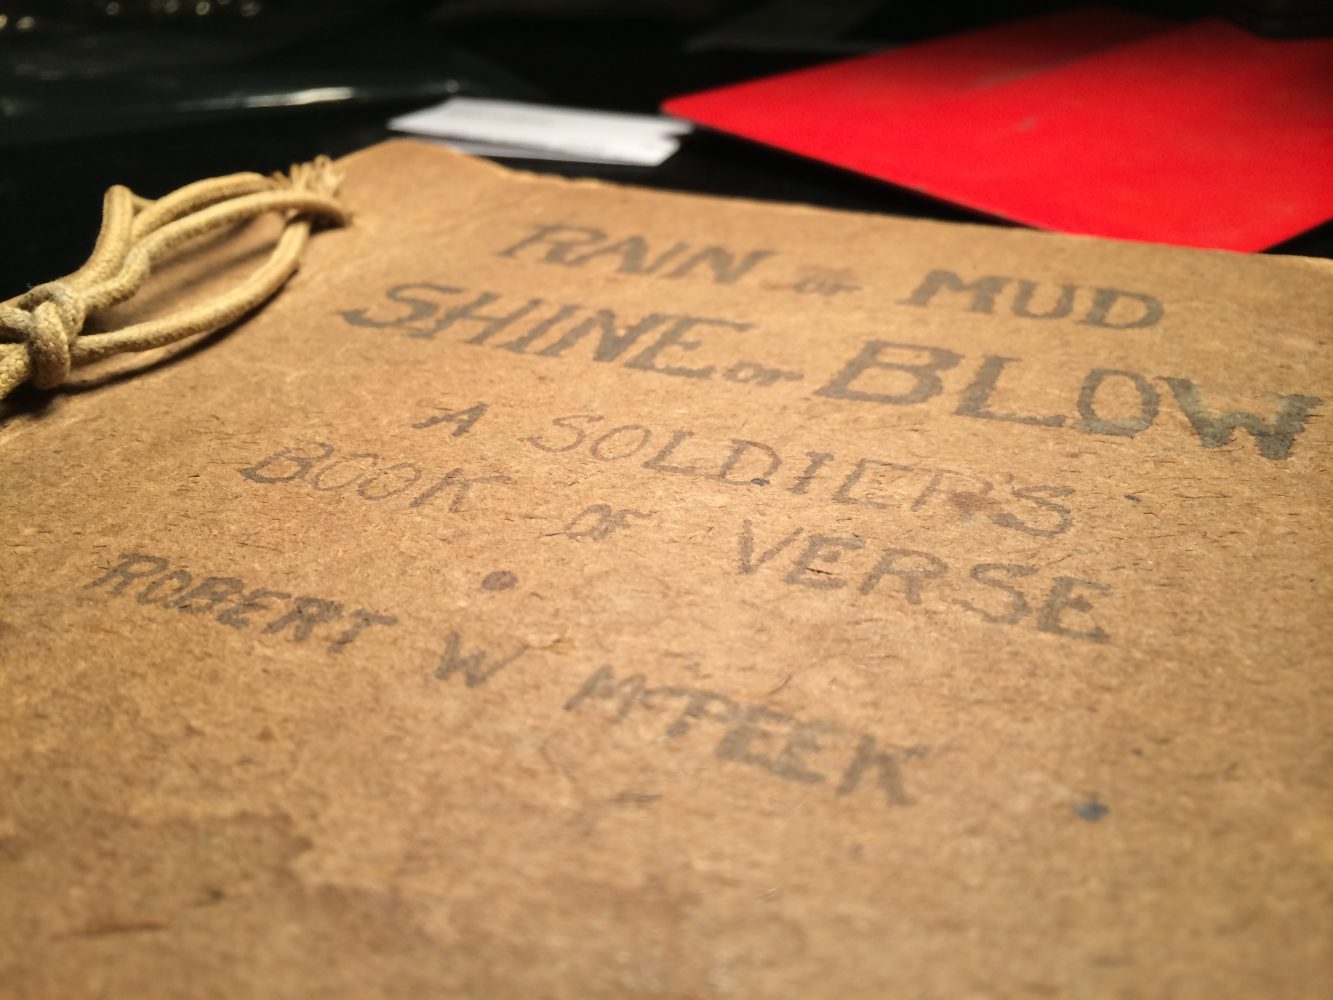 """The cover of the actual book """"Rain or Mud, Shine or Blow"""" by Robert Wayne McPeek"""